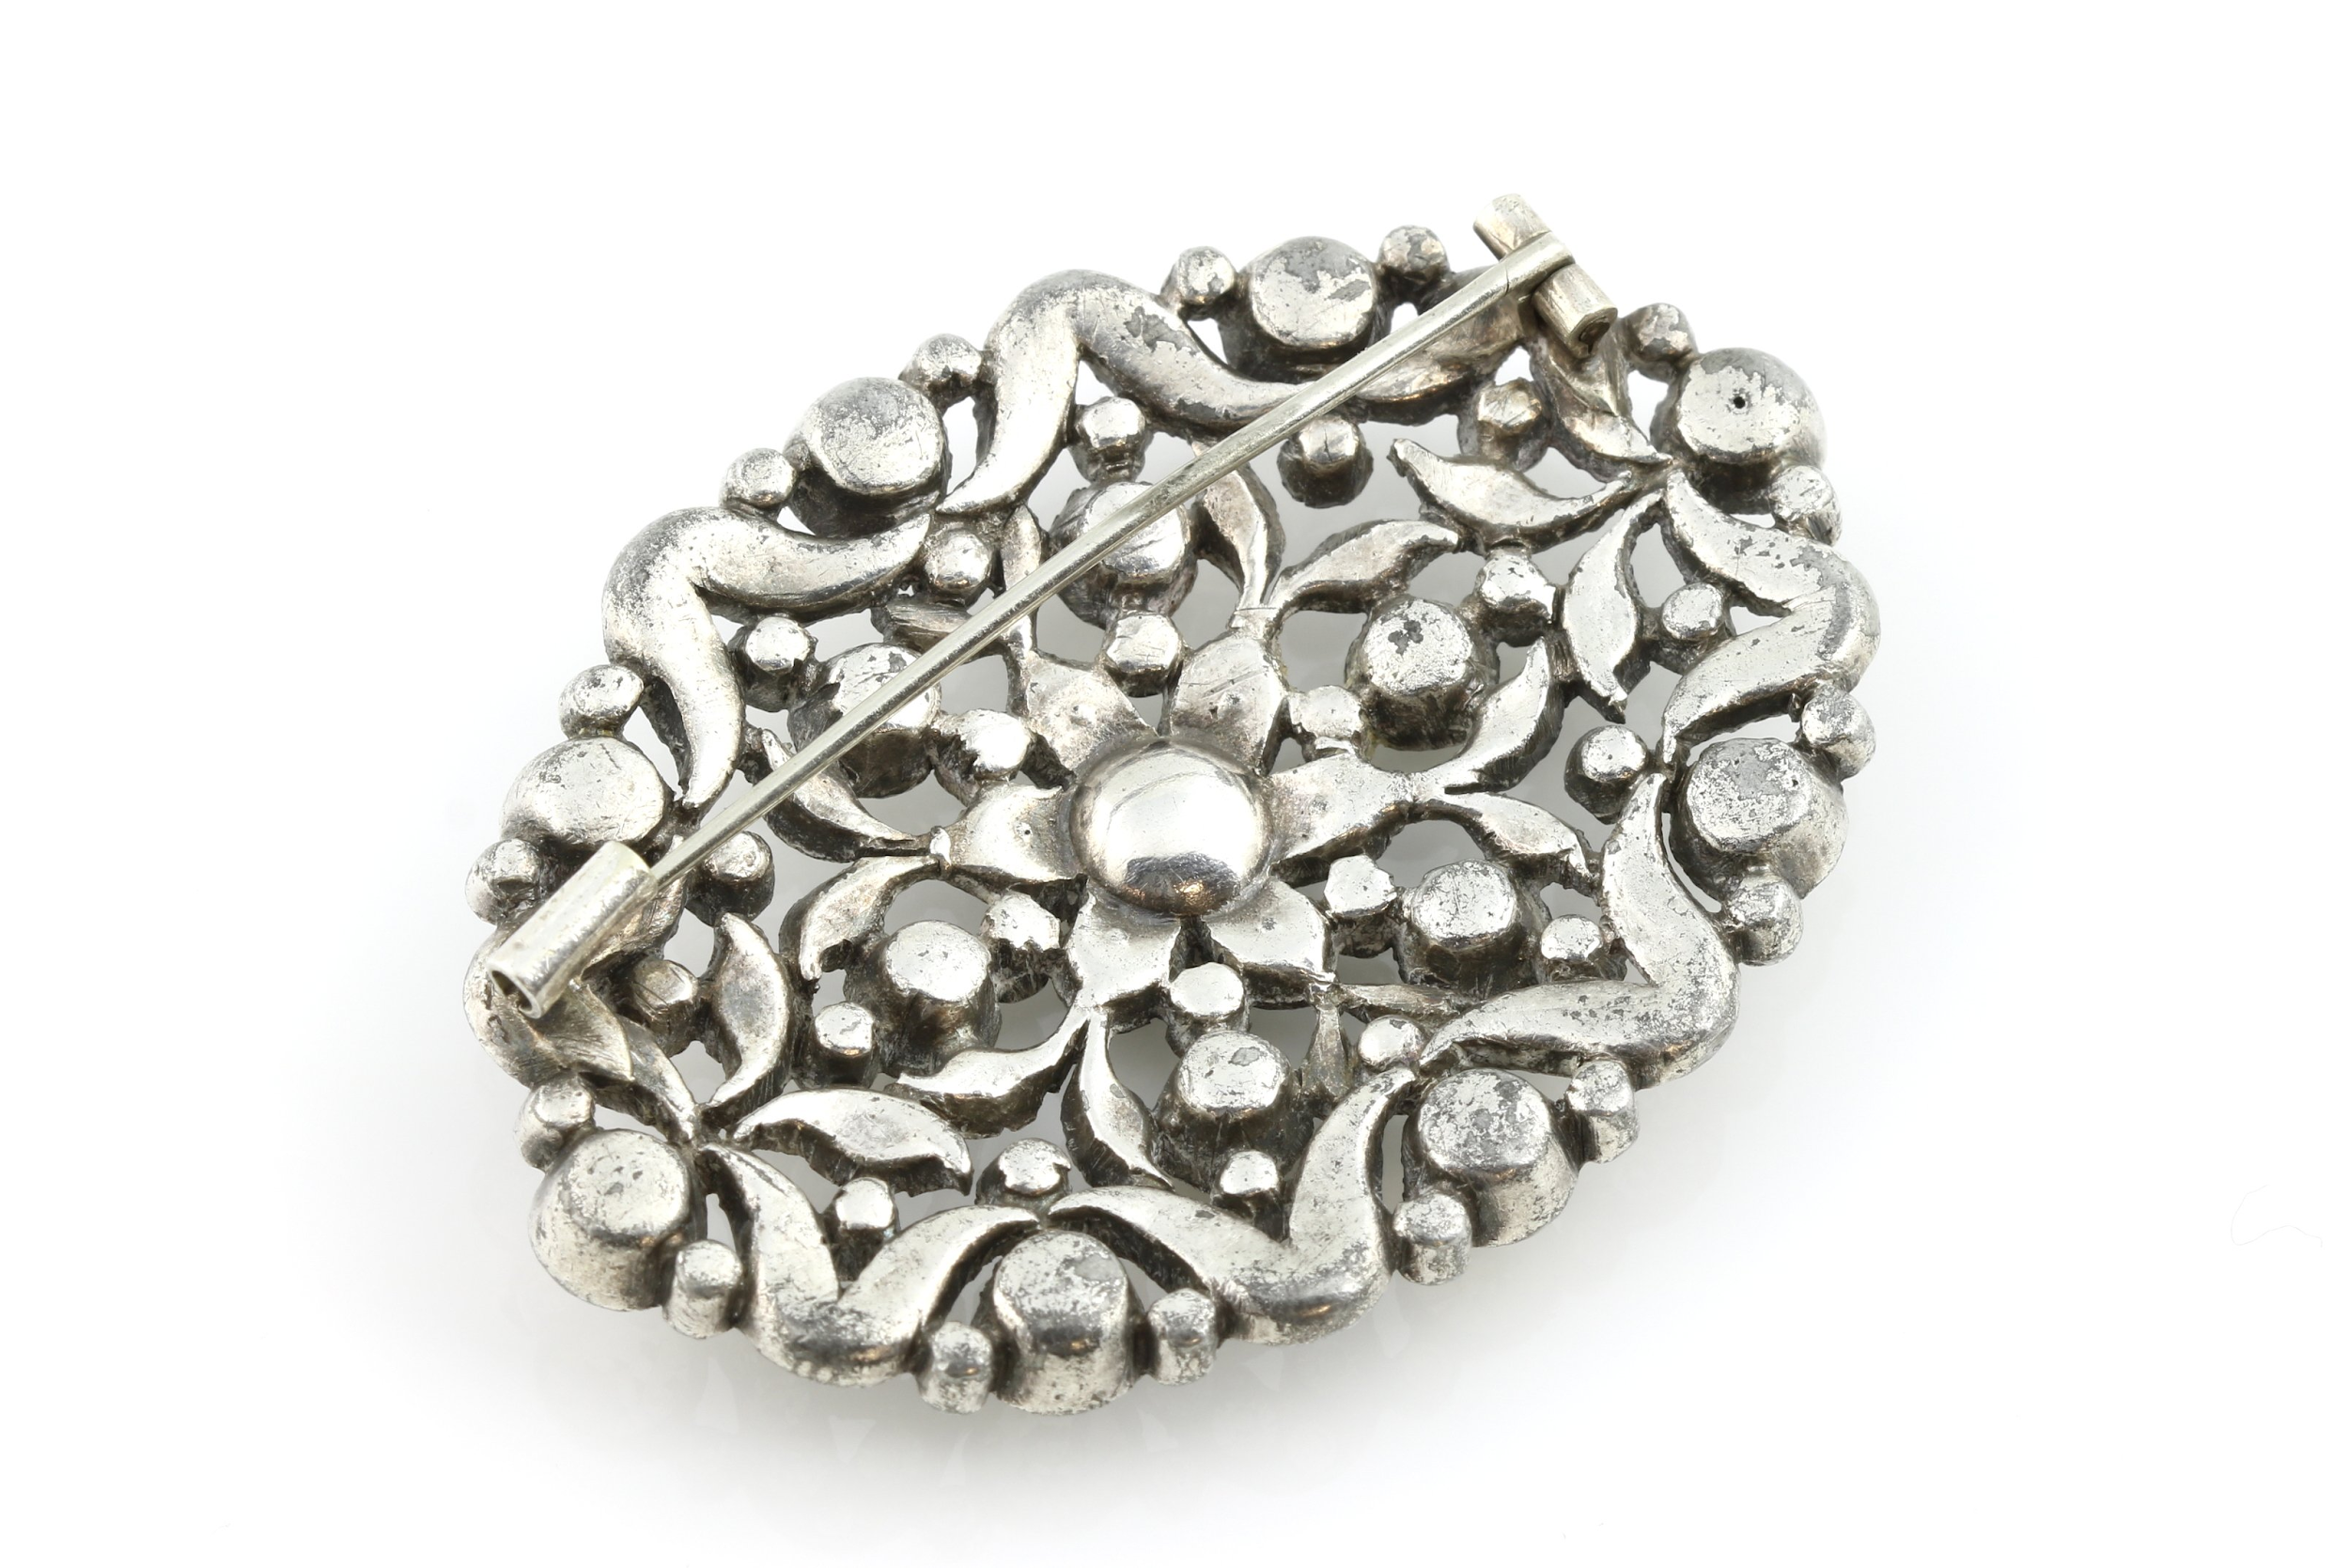 Victorian Silver-plated paste brooch